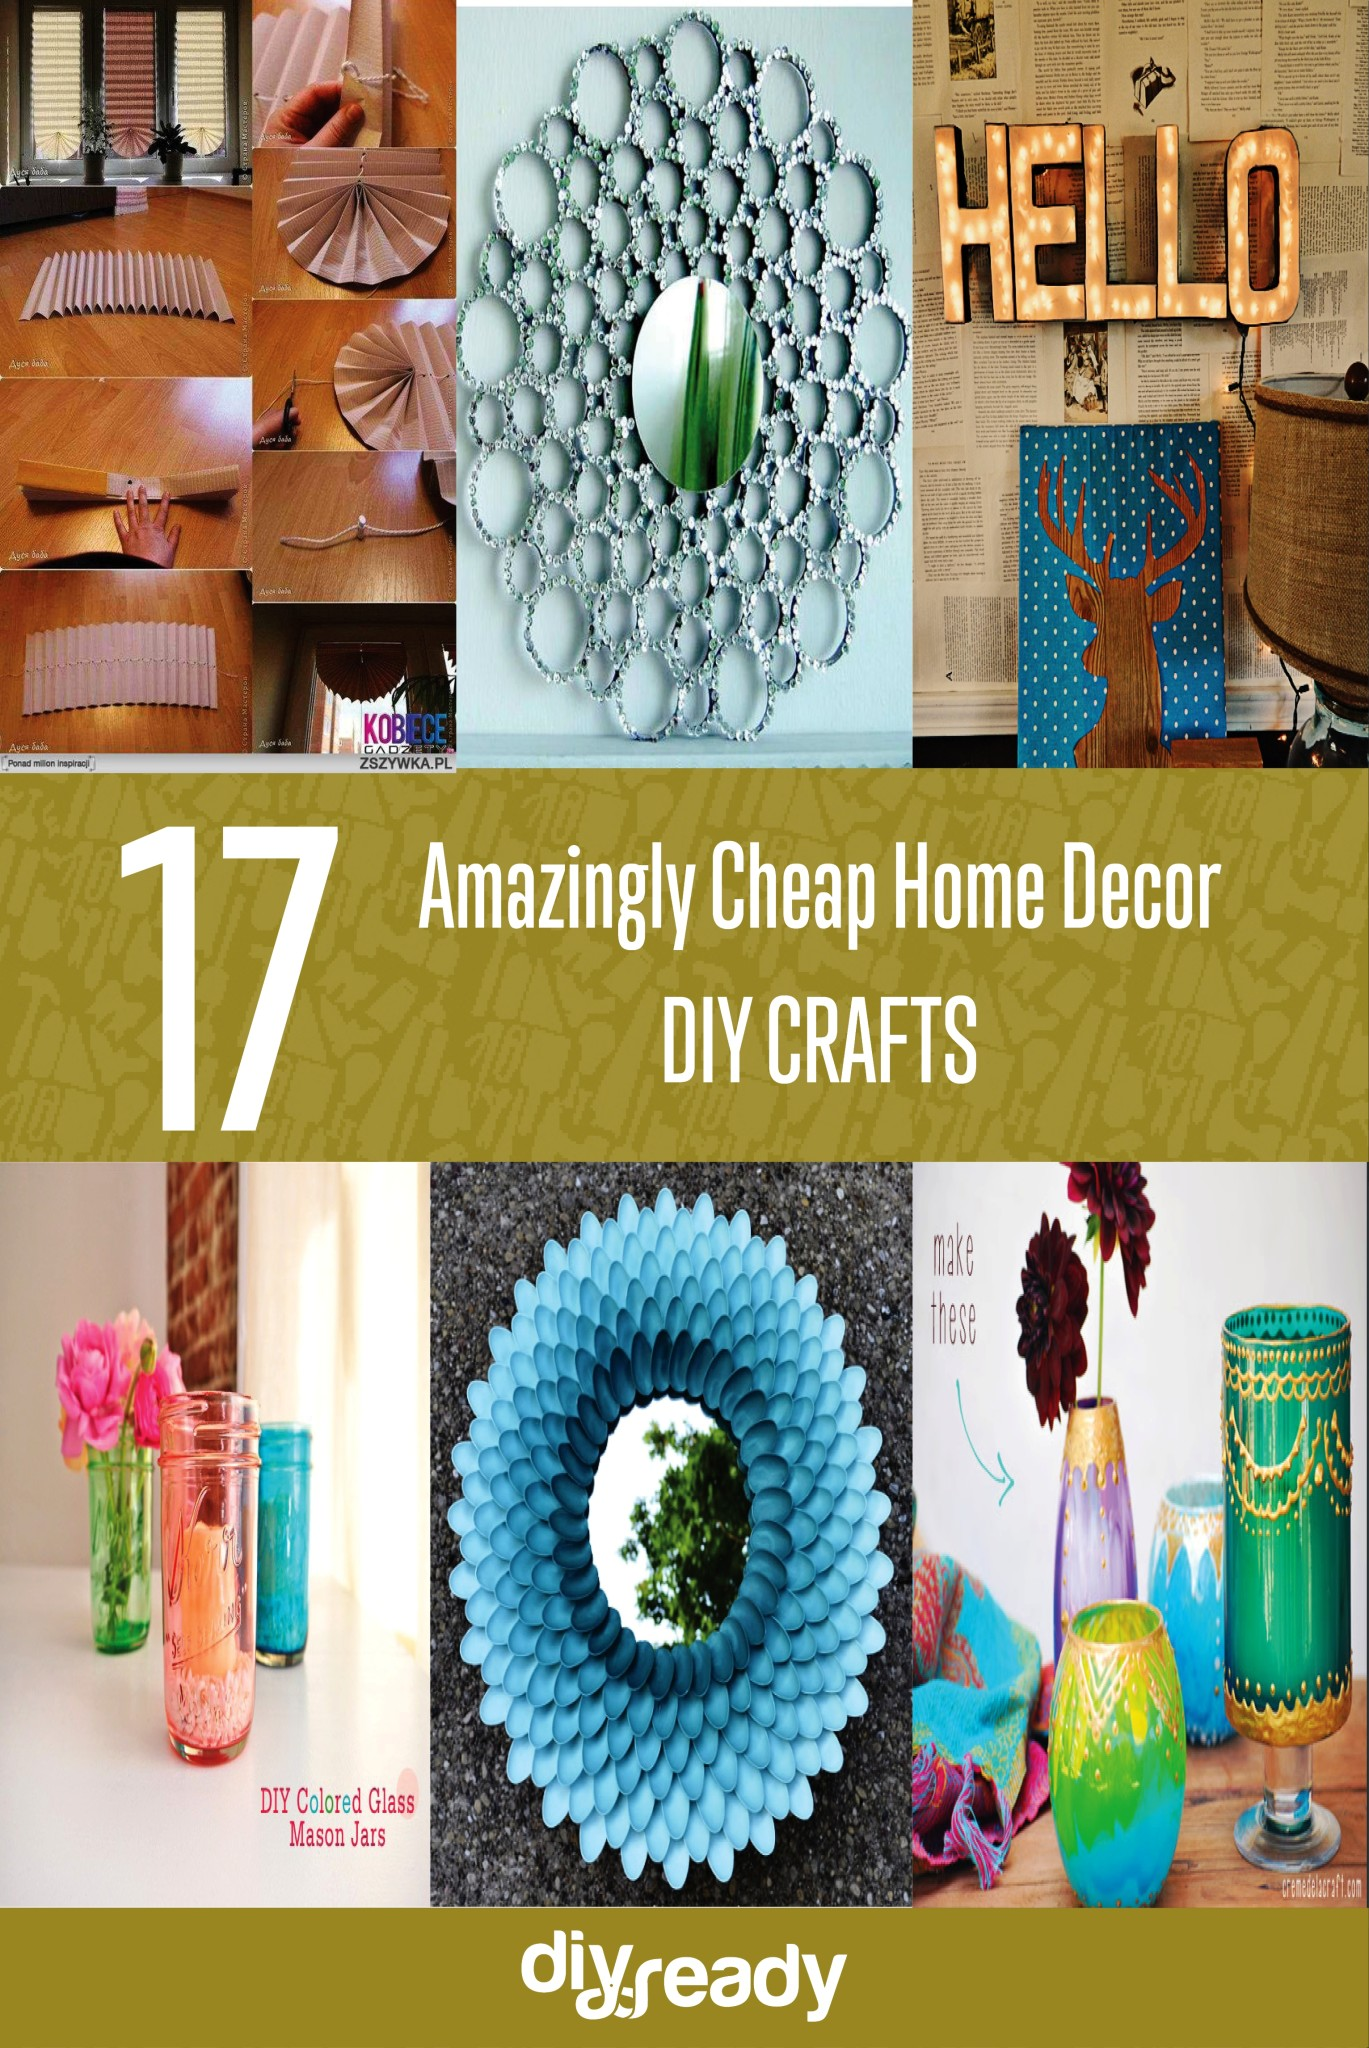 Best 17 Amazingly Cheap Home Decor Diy Crafts New Craft Works This Month